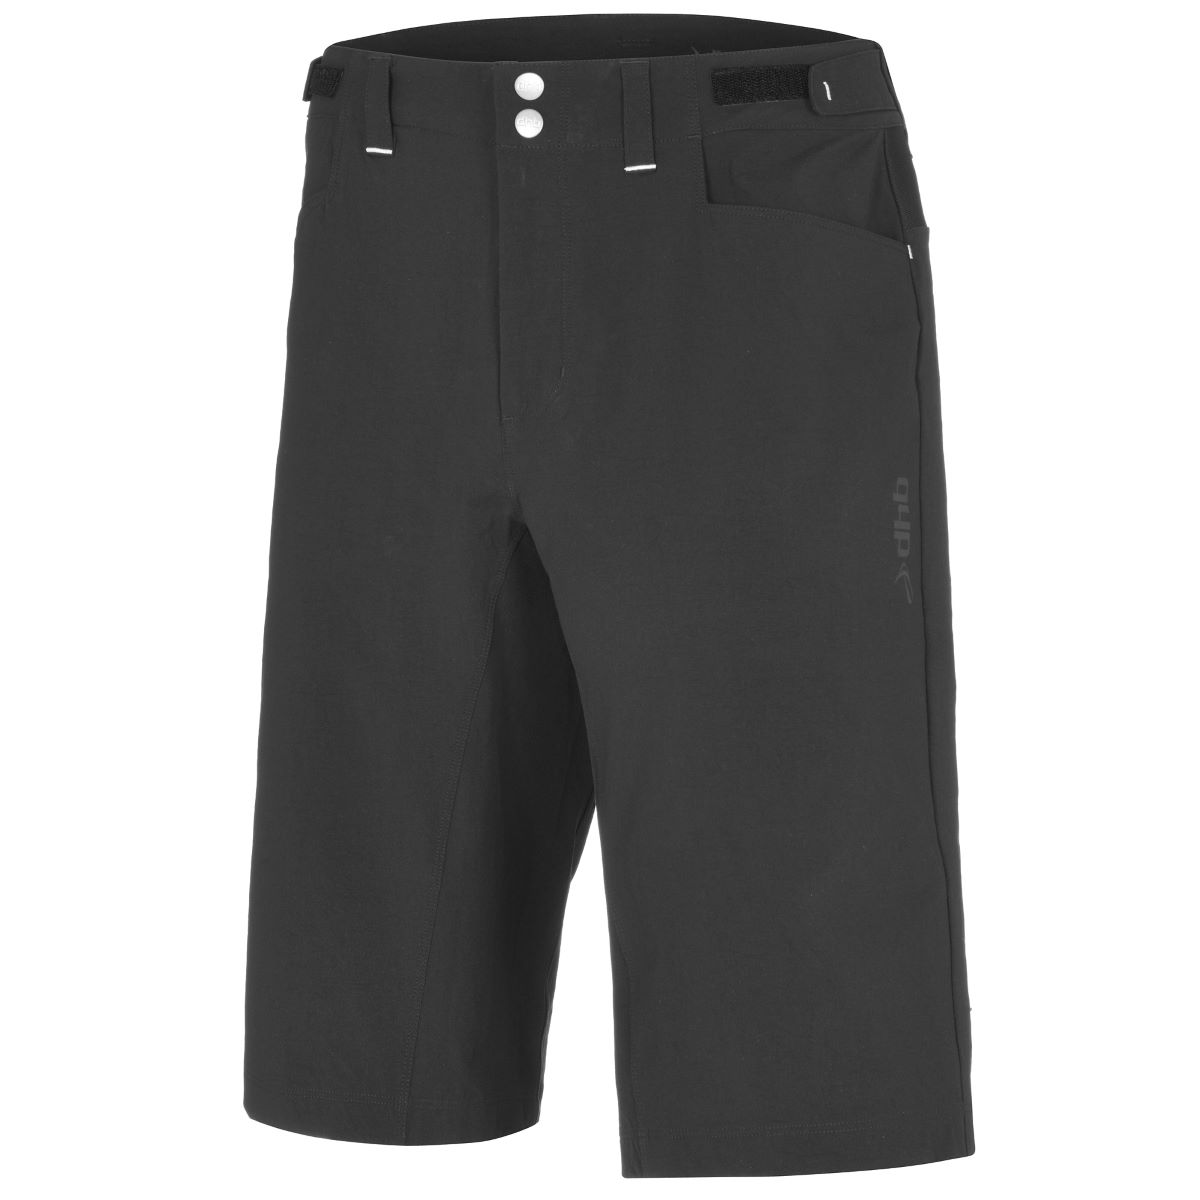 Short VTT dhb Trail (baggy) - Small Noir Shorts amples